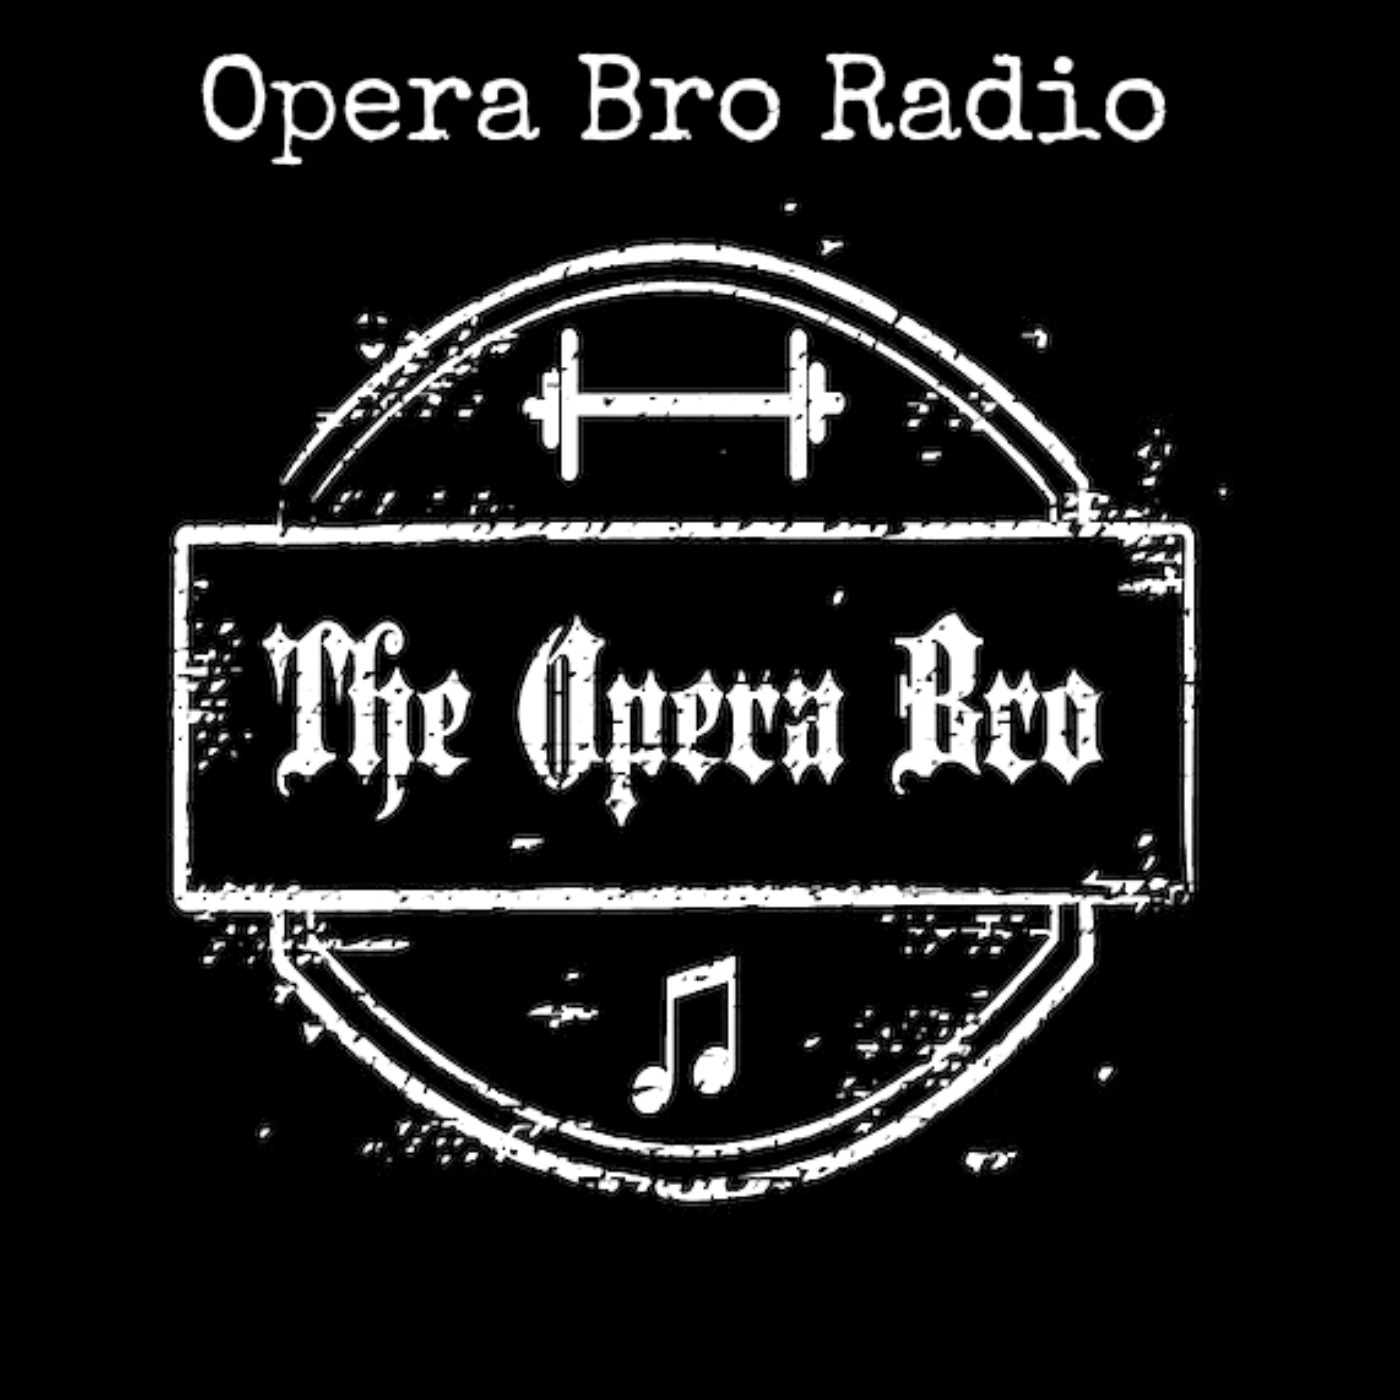 Opera Bro Radio And Blog - Opera Bro Training